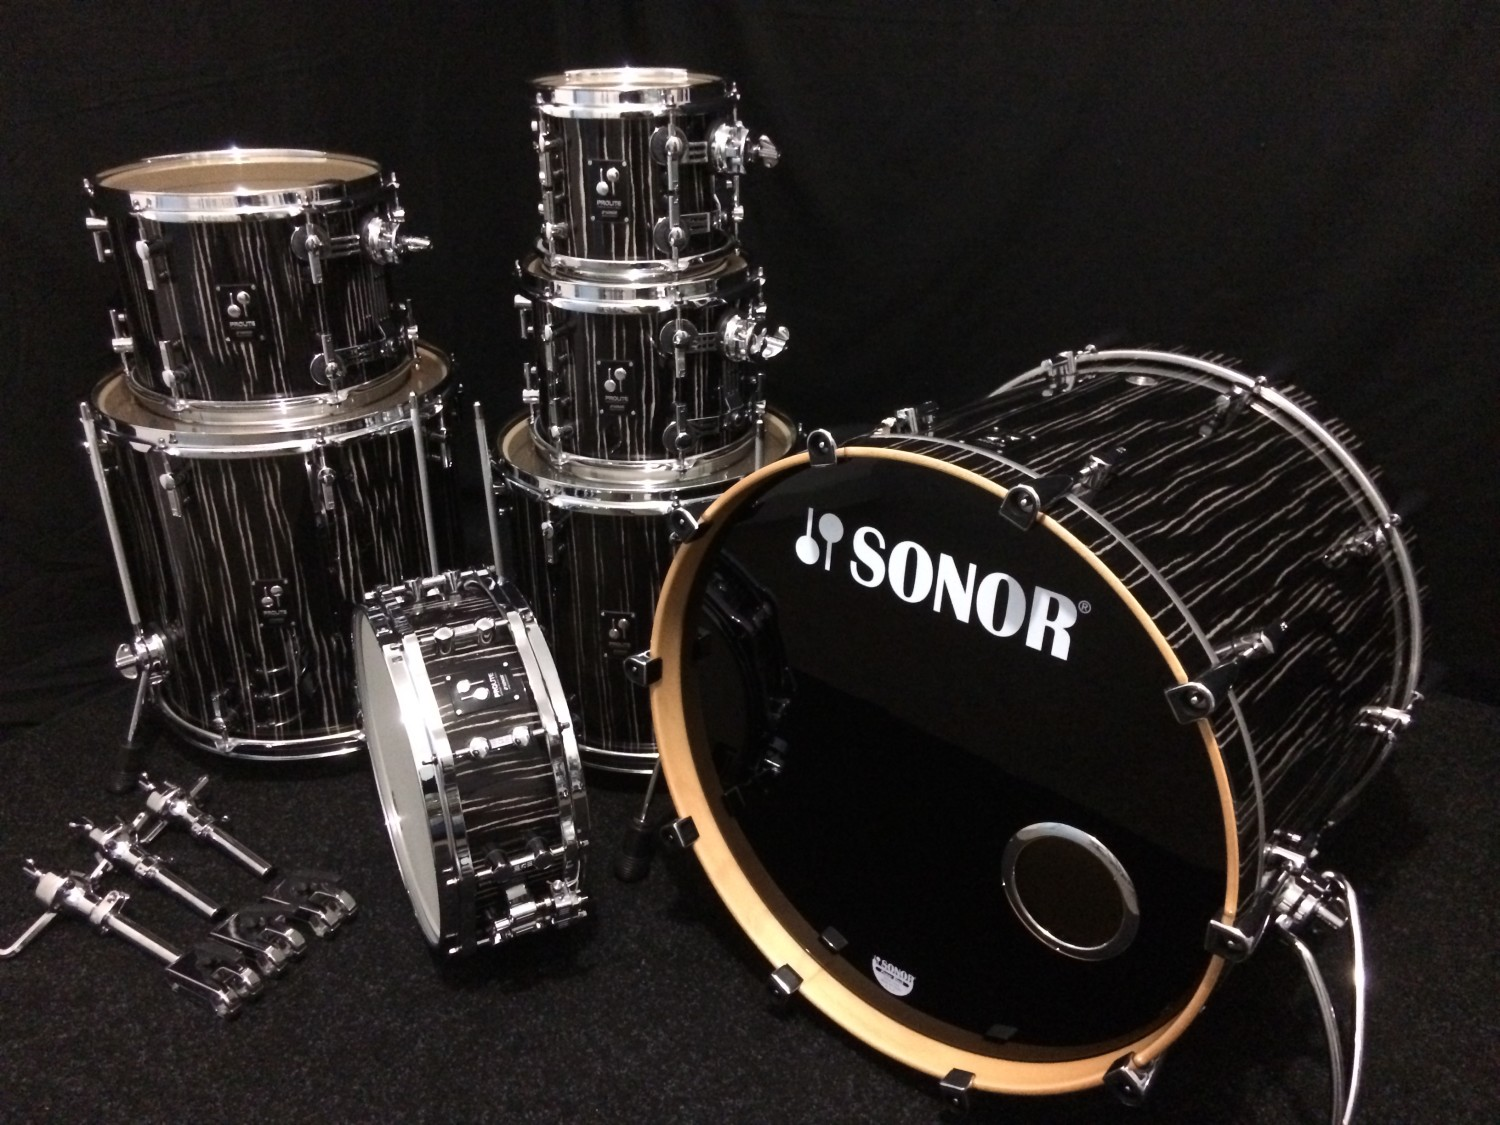 Sonor Prolite In Ebony White Stripes 7 Piece Shell